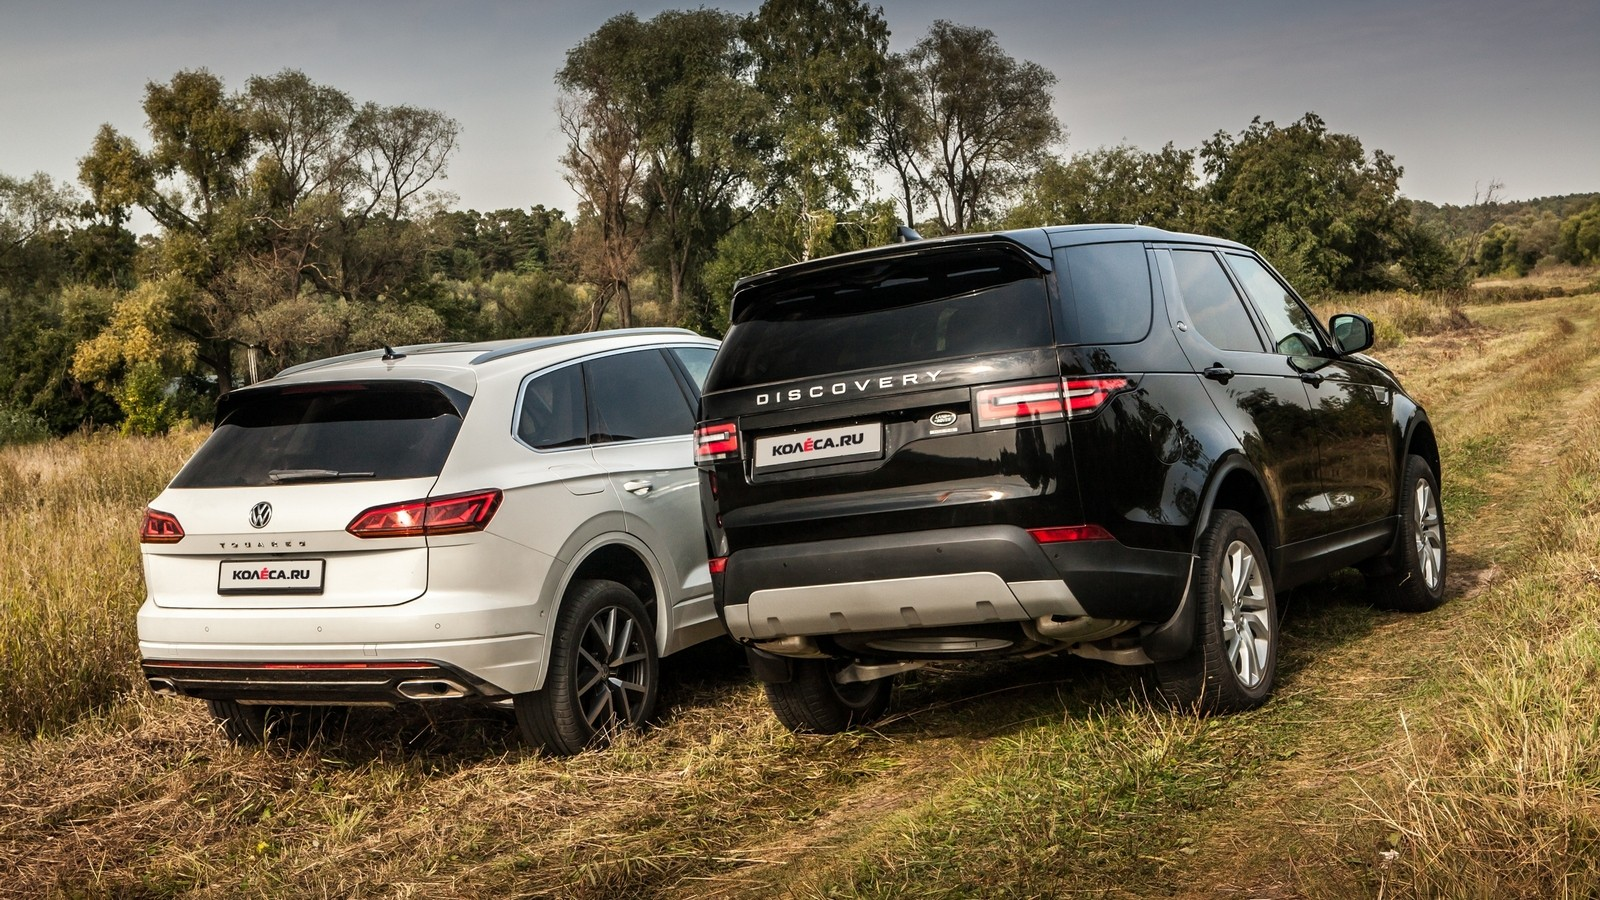 Volkswagen Touareg Land Rover Discovery (2)